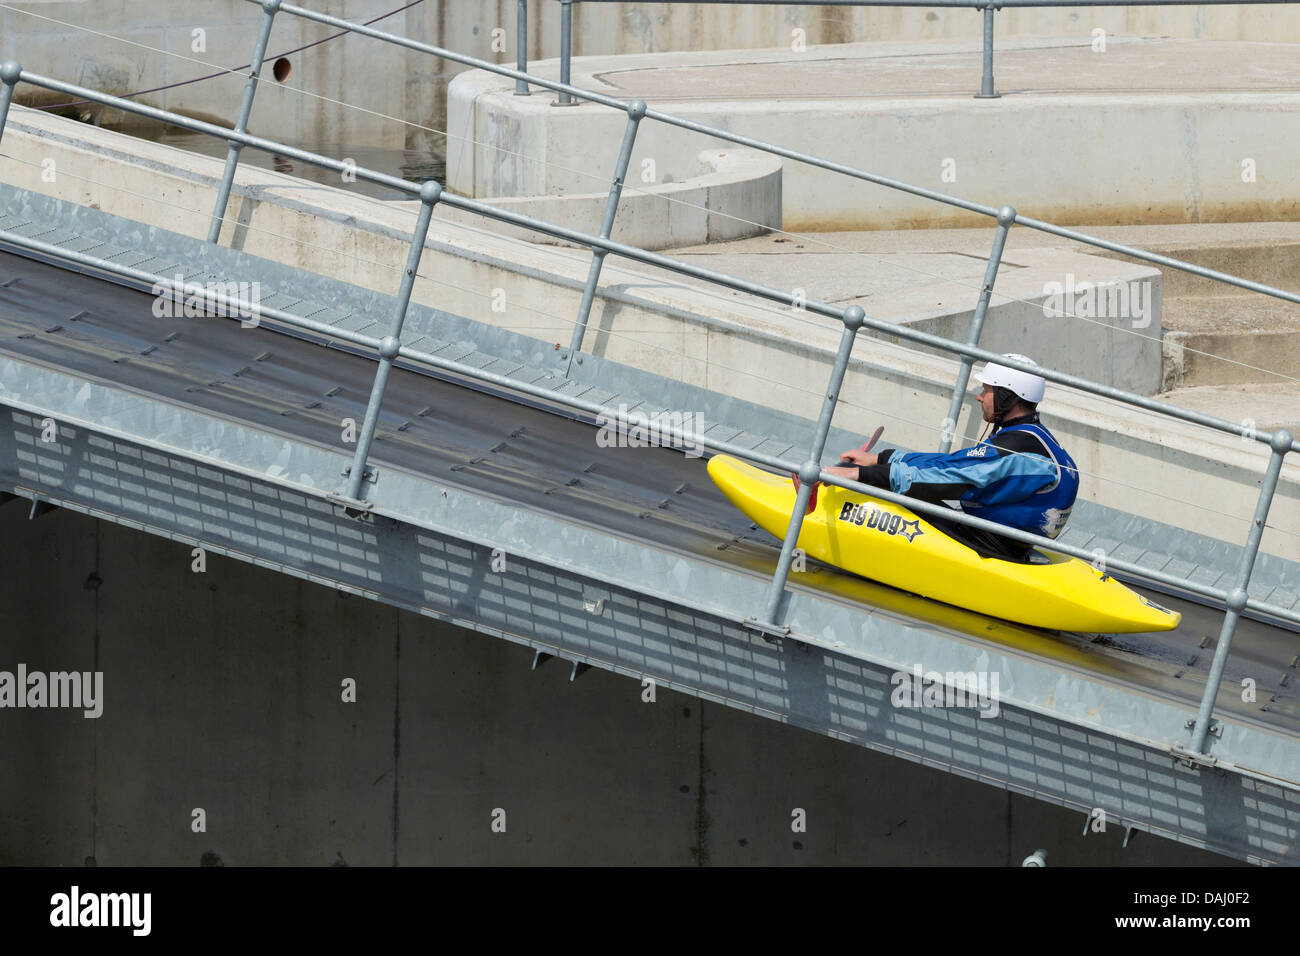 Canoe conveyor belt taking canoe back to the start of the International White Water Course at The Tees Barrage, - Stock Image